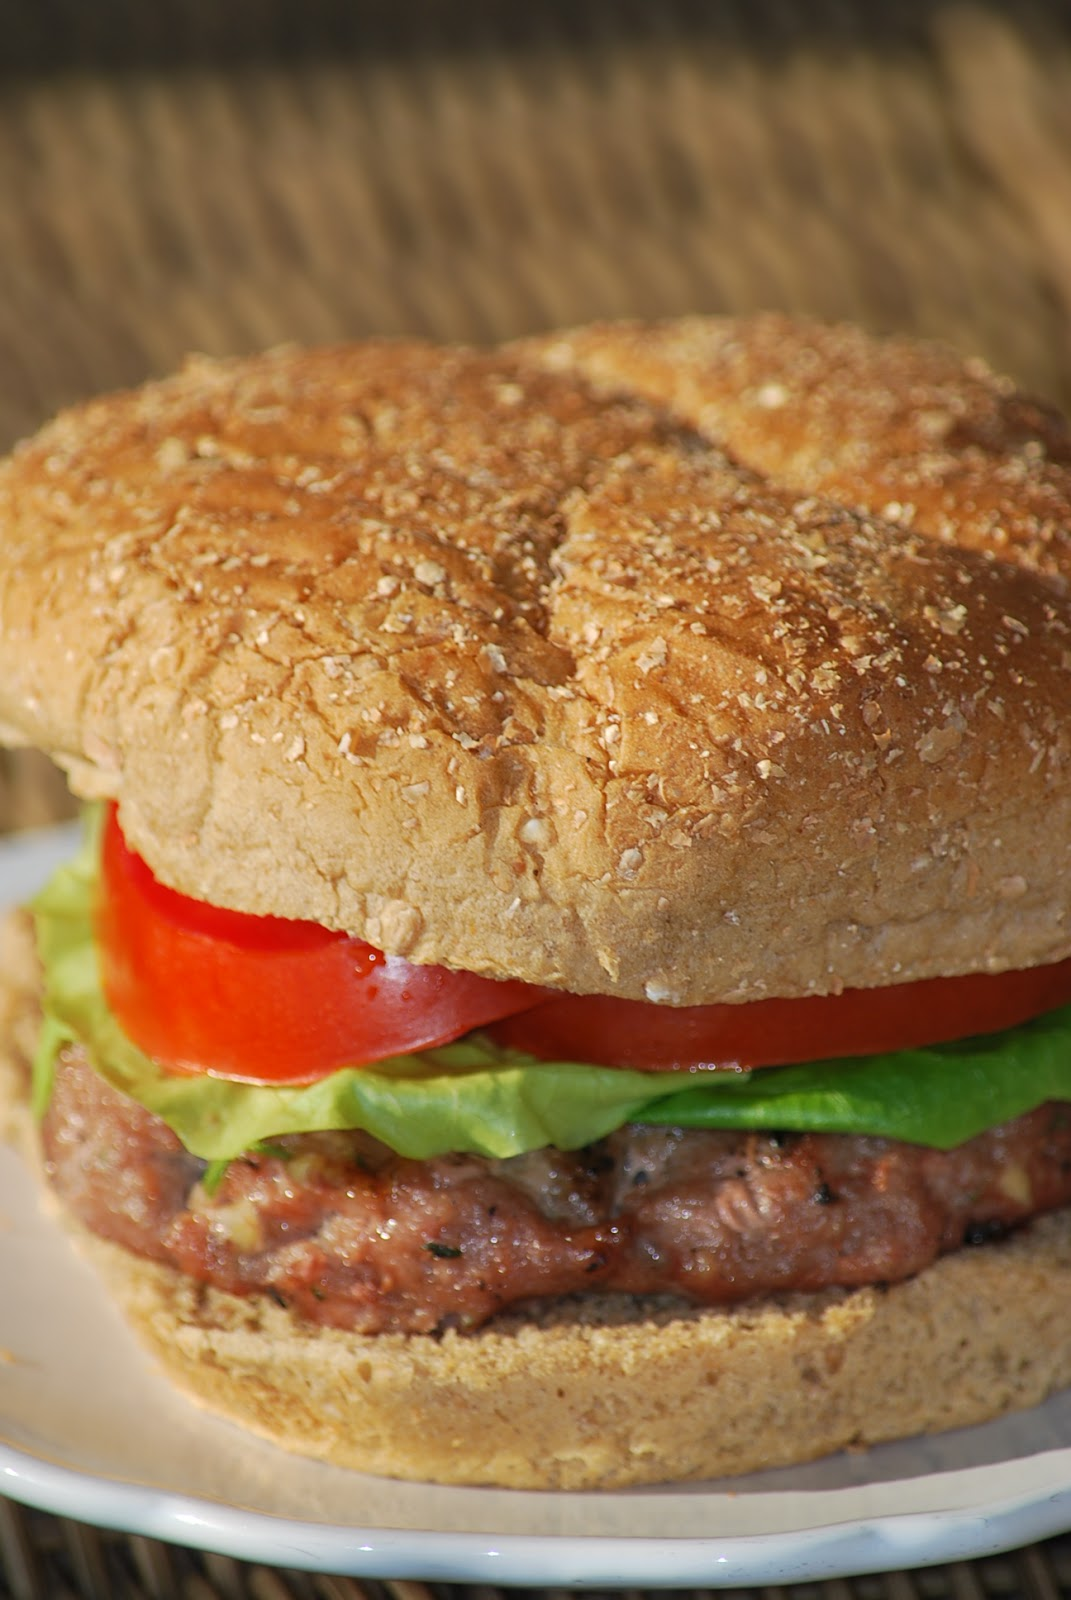 My story in recipes: Herbed Turkey Burgers